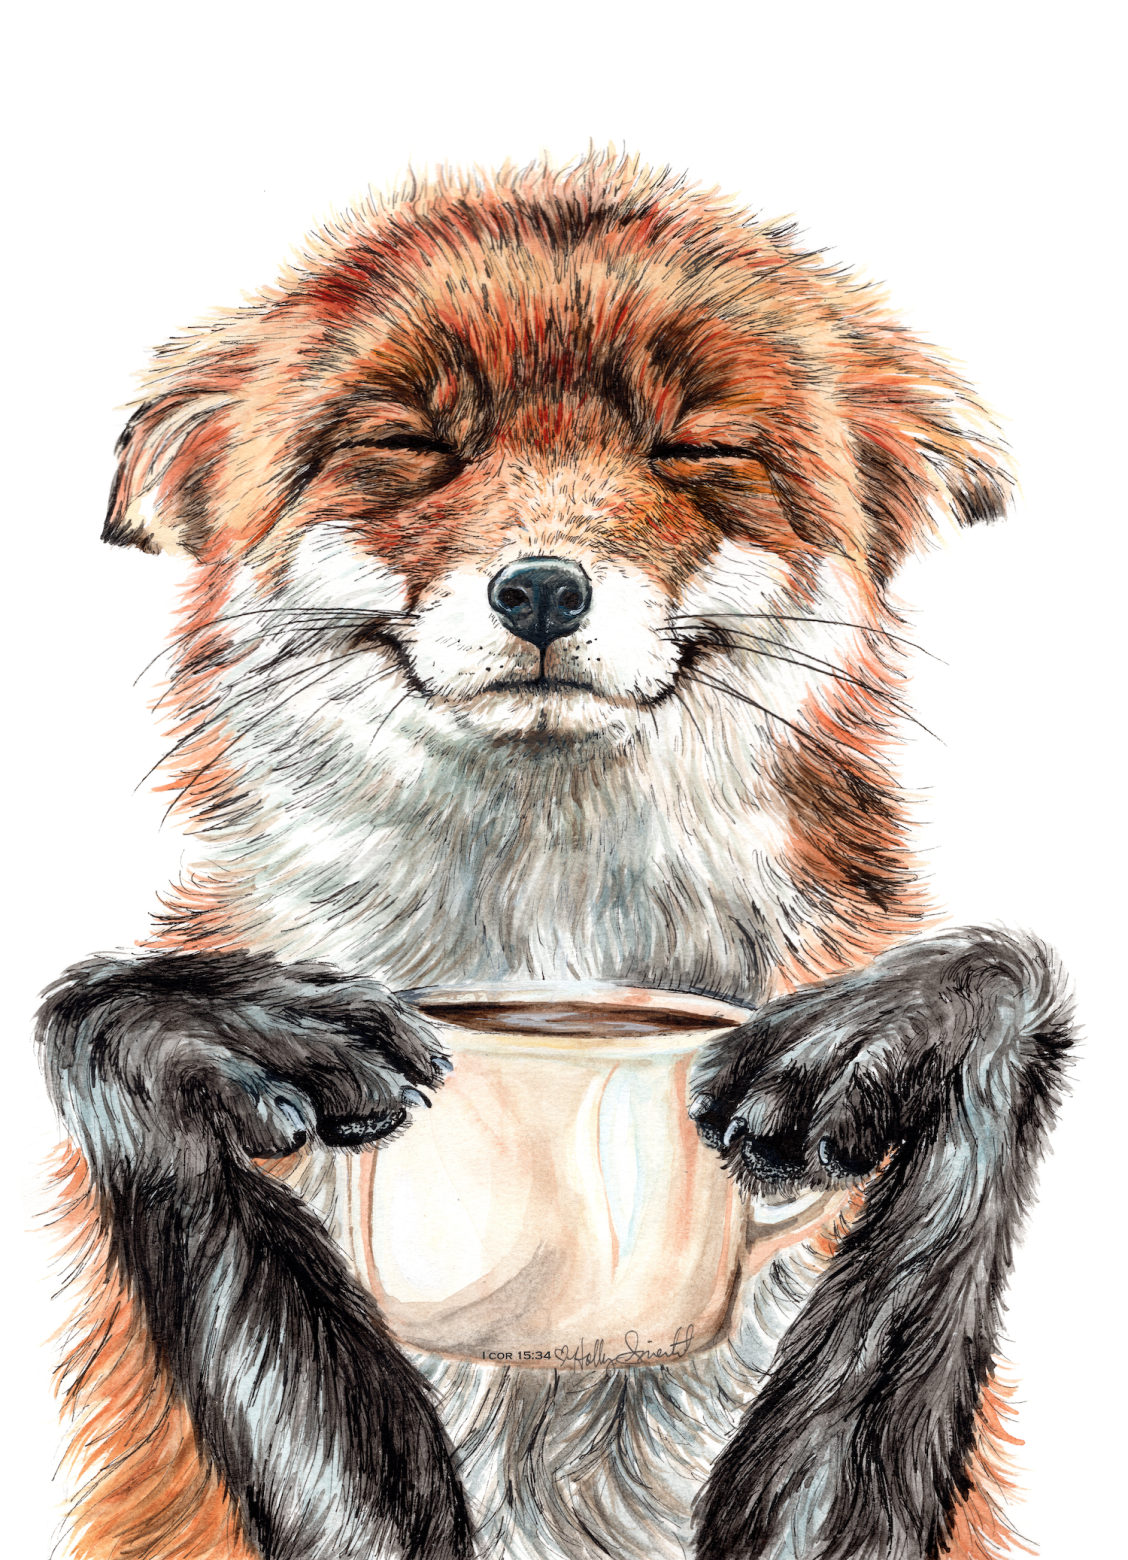 """""""'Morning fox' Red fox with her morning coffee"""" Art by Holly Simental on Society6 